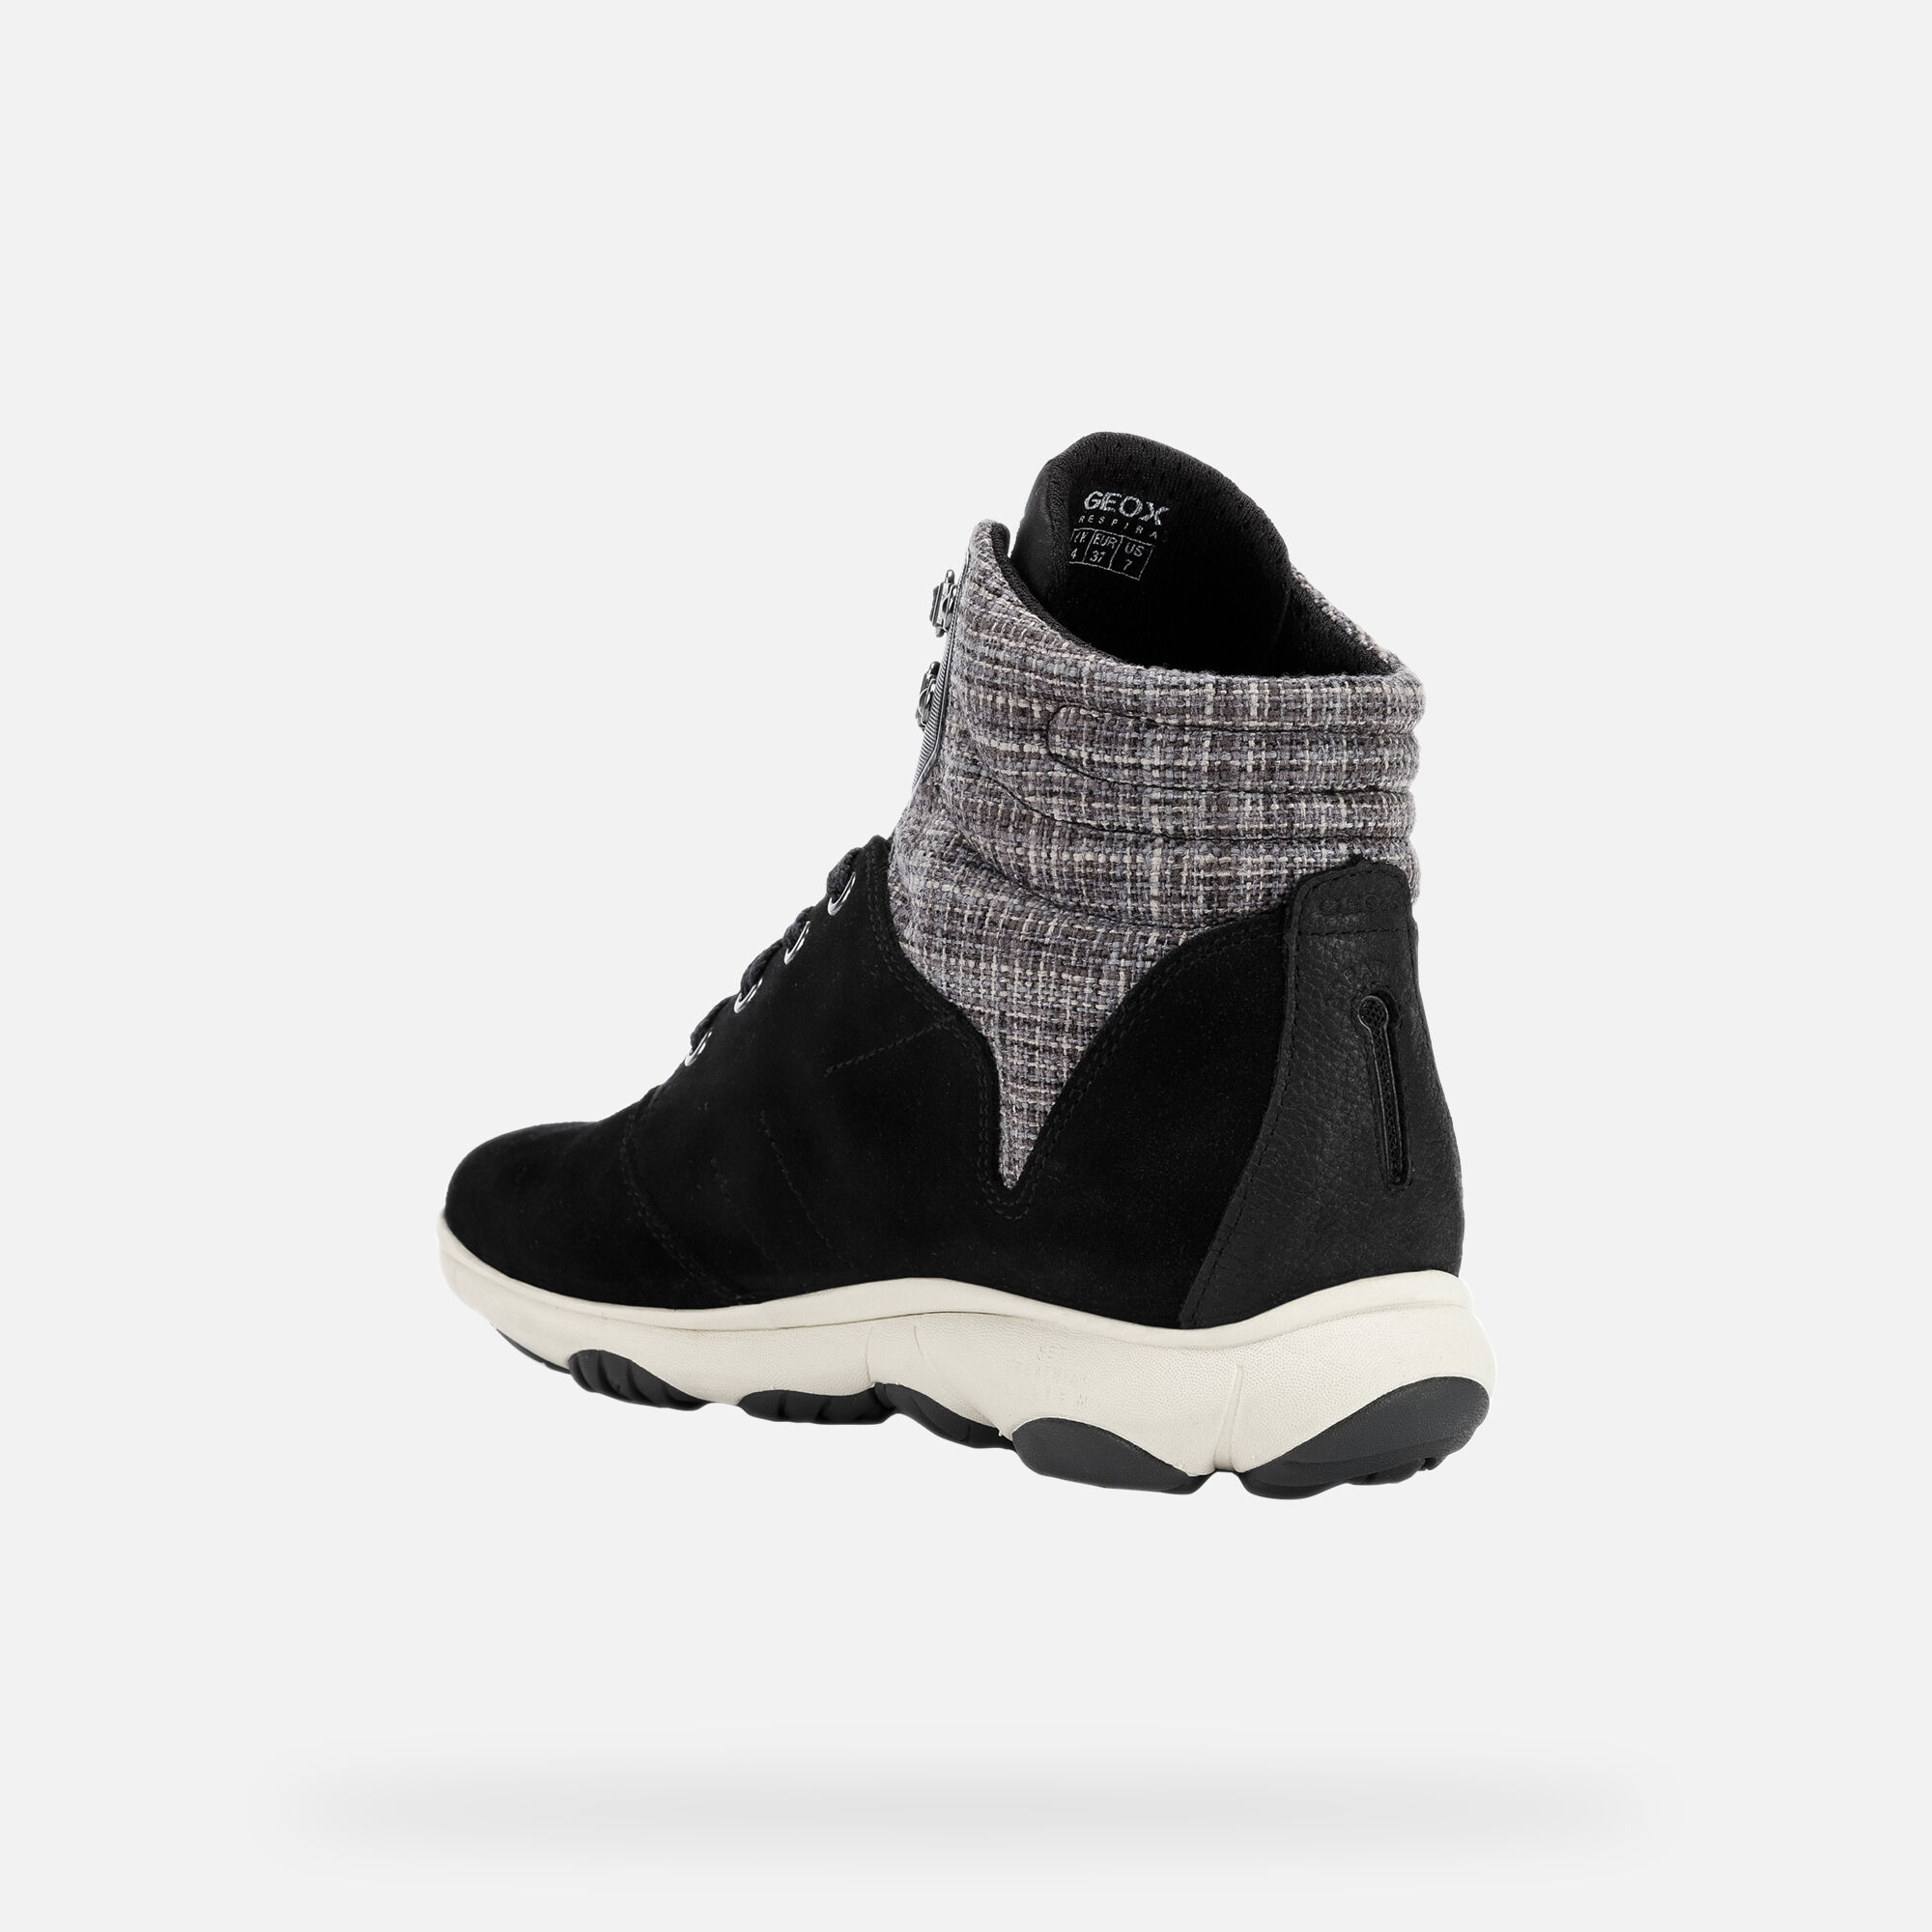 Geox Nebula 4x4 ABX Ankle Boots, Black   Black ankle boots